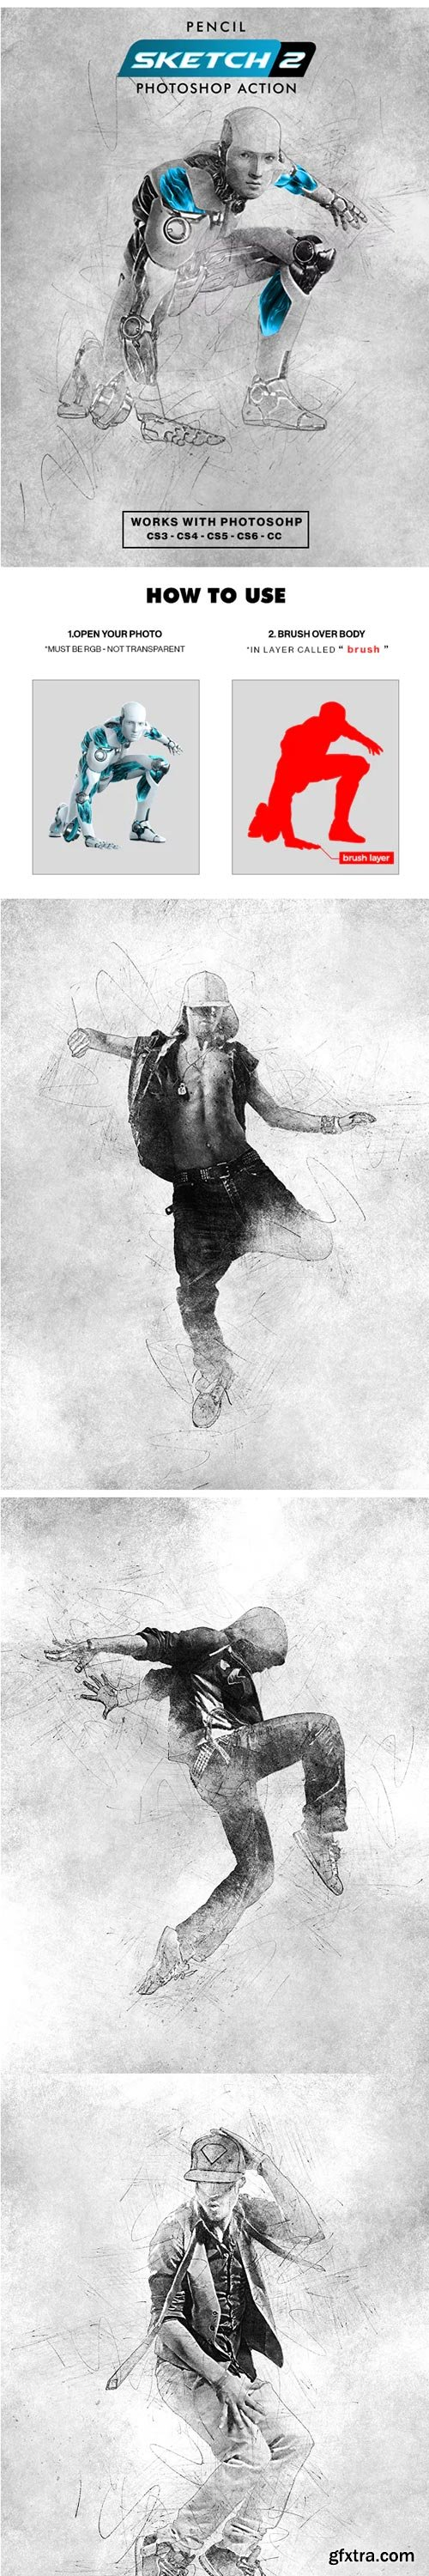 GraphicRiver - Pencil Sketch 2 Photoshop Action - 22727861